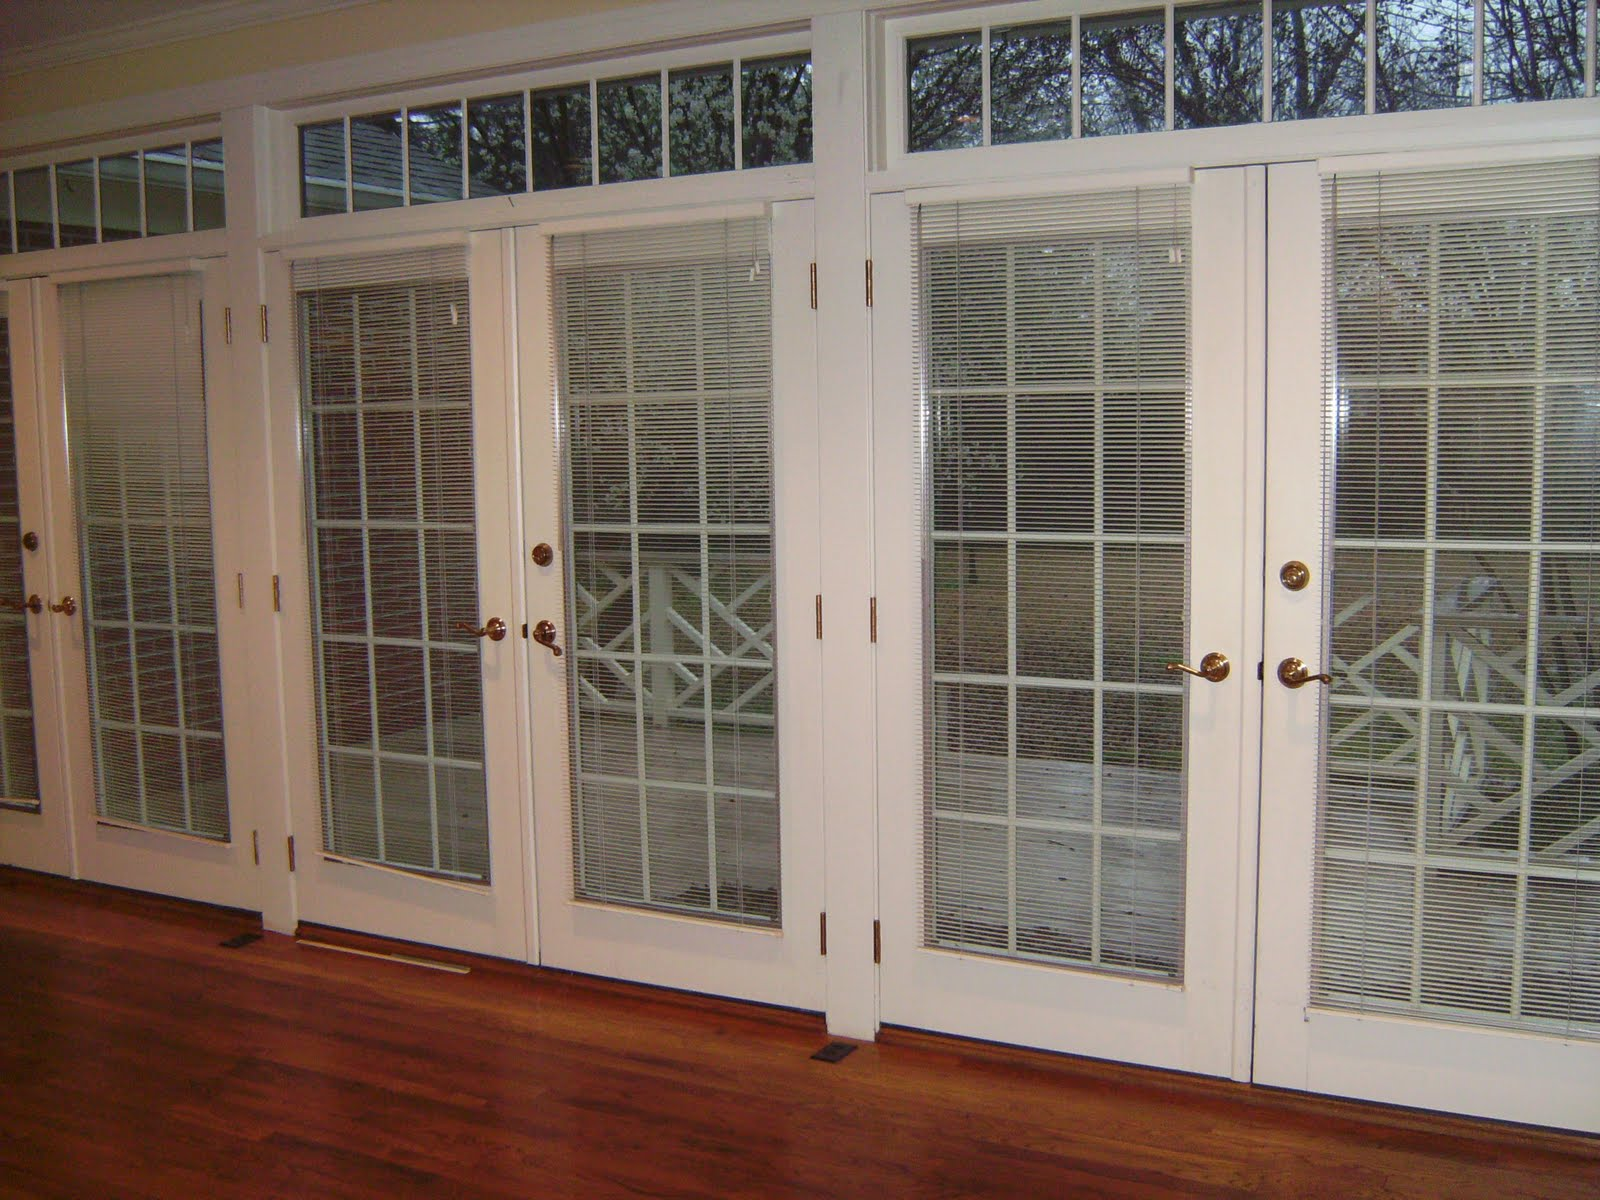 Florida Room Windows : For sale delta bayou house florida room and french doors